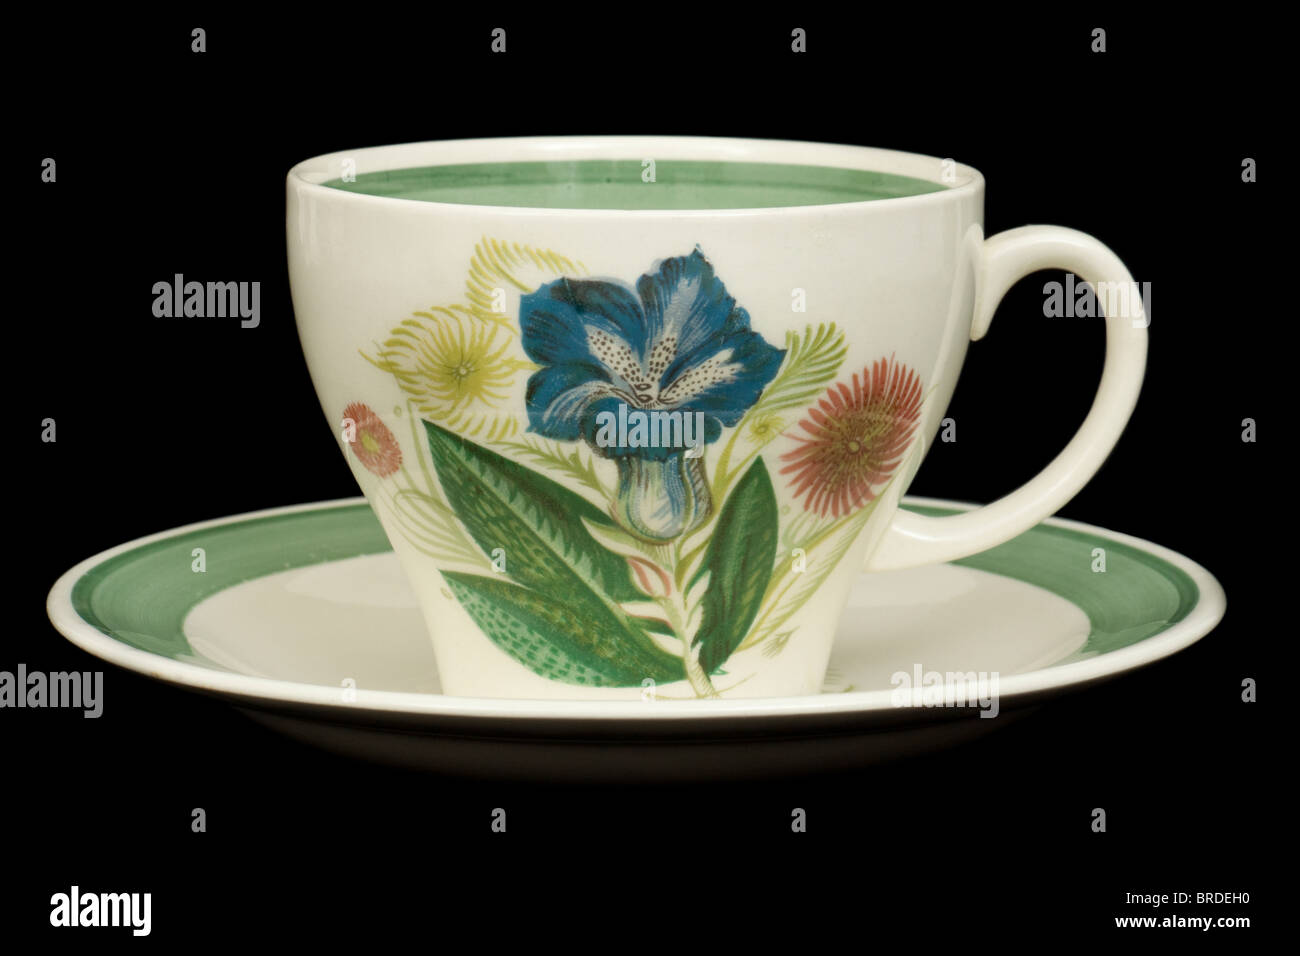 Susie Cooper (Blue Gentian pattern) ceramic tea cup and saucer - Stock Image